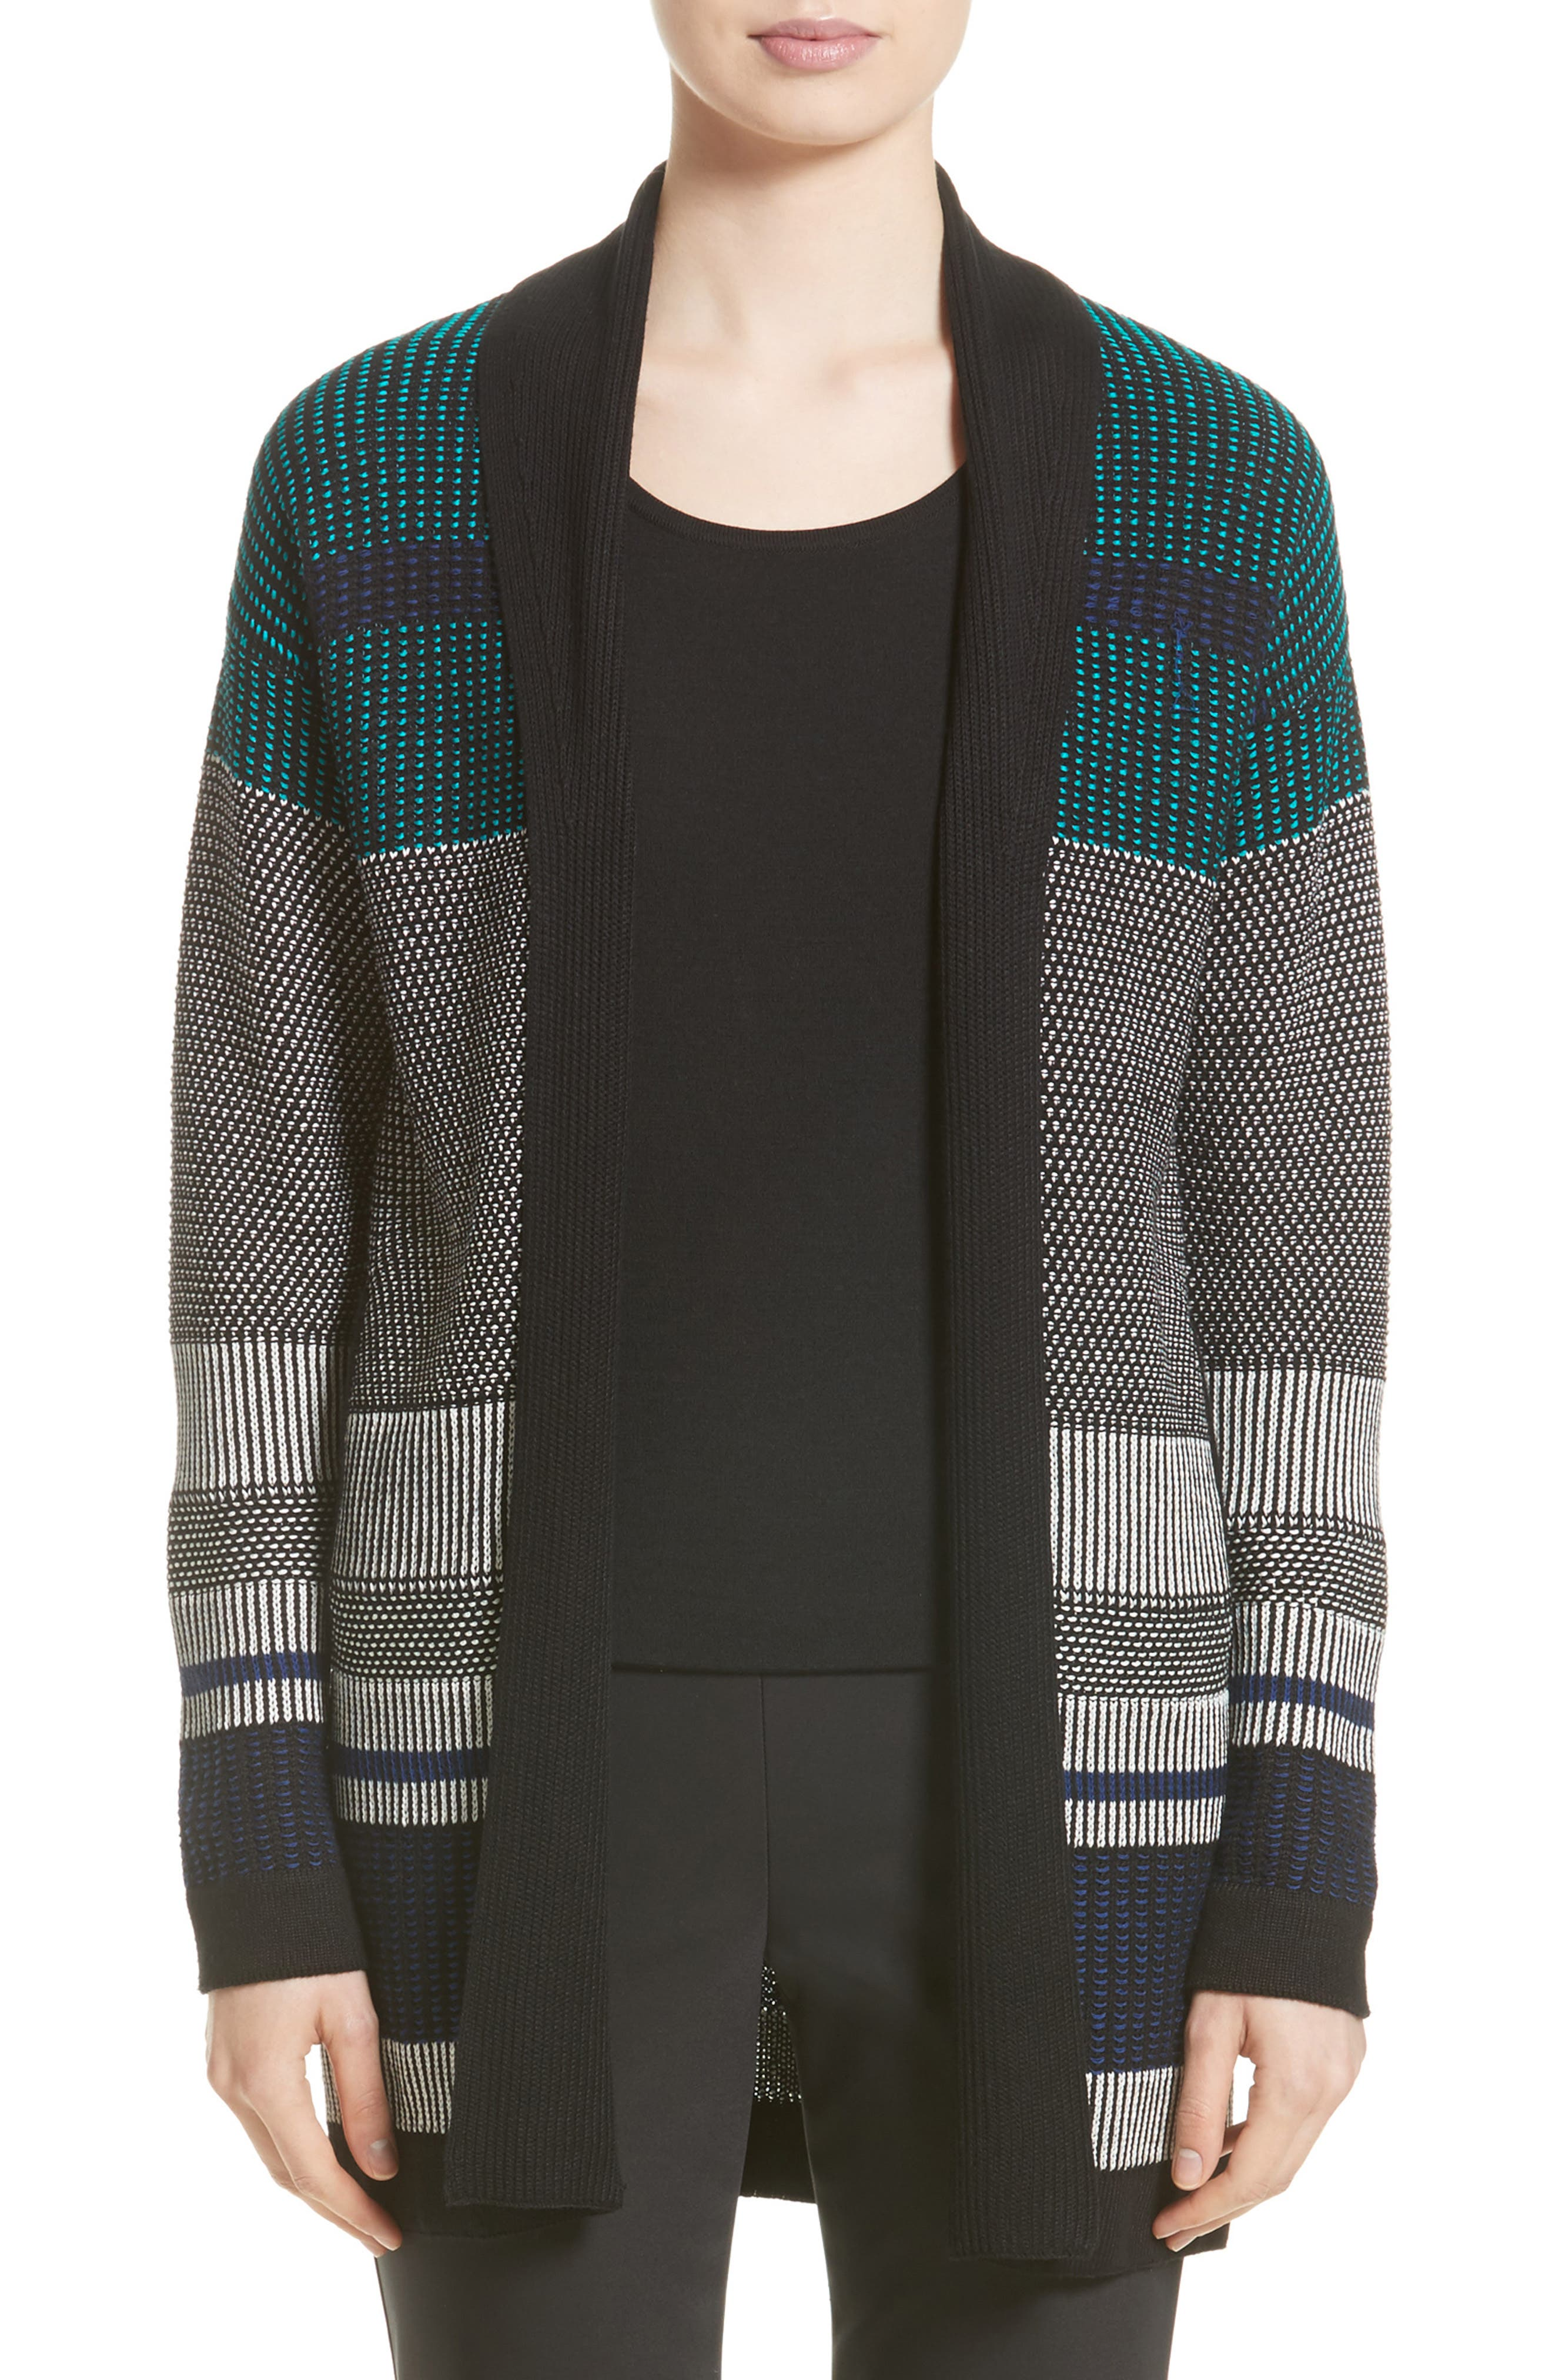 Main Image - St. John Collection Engineered Inlay Stitch Knit Cardigan